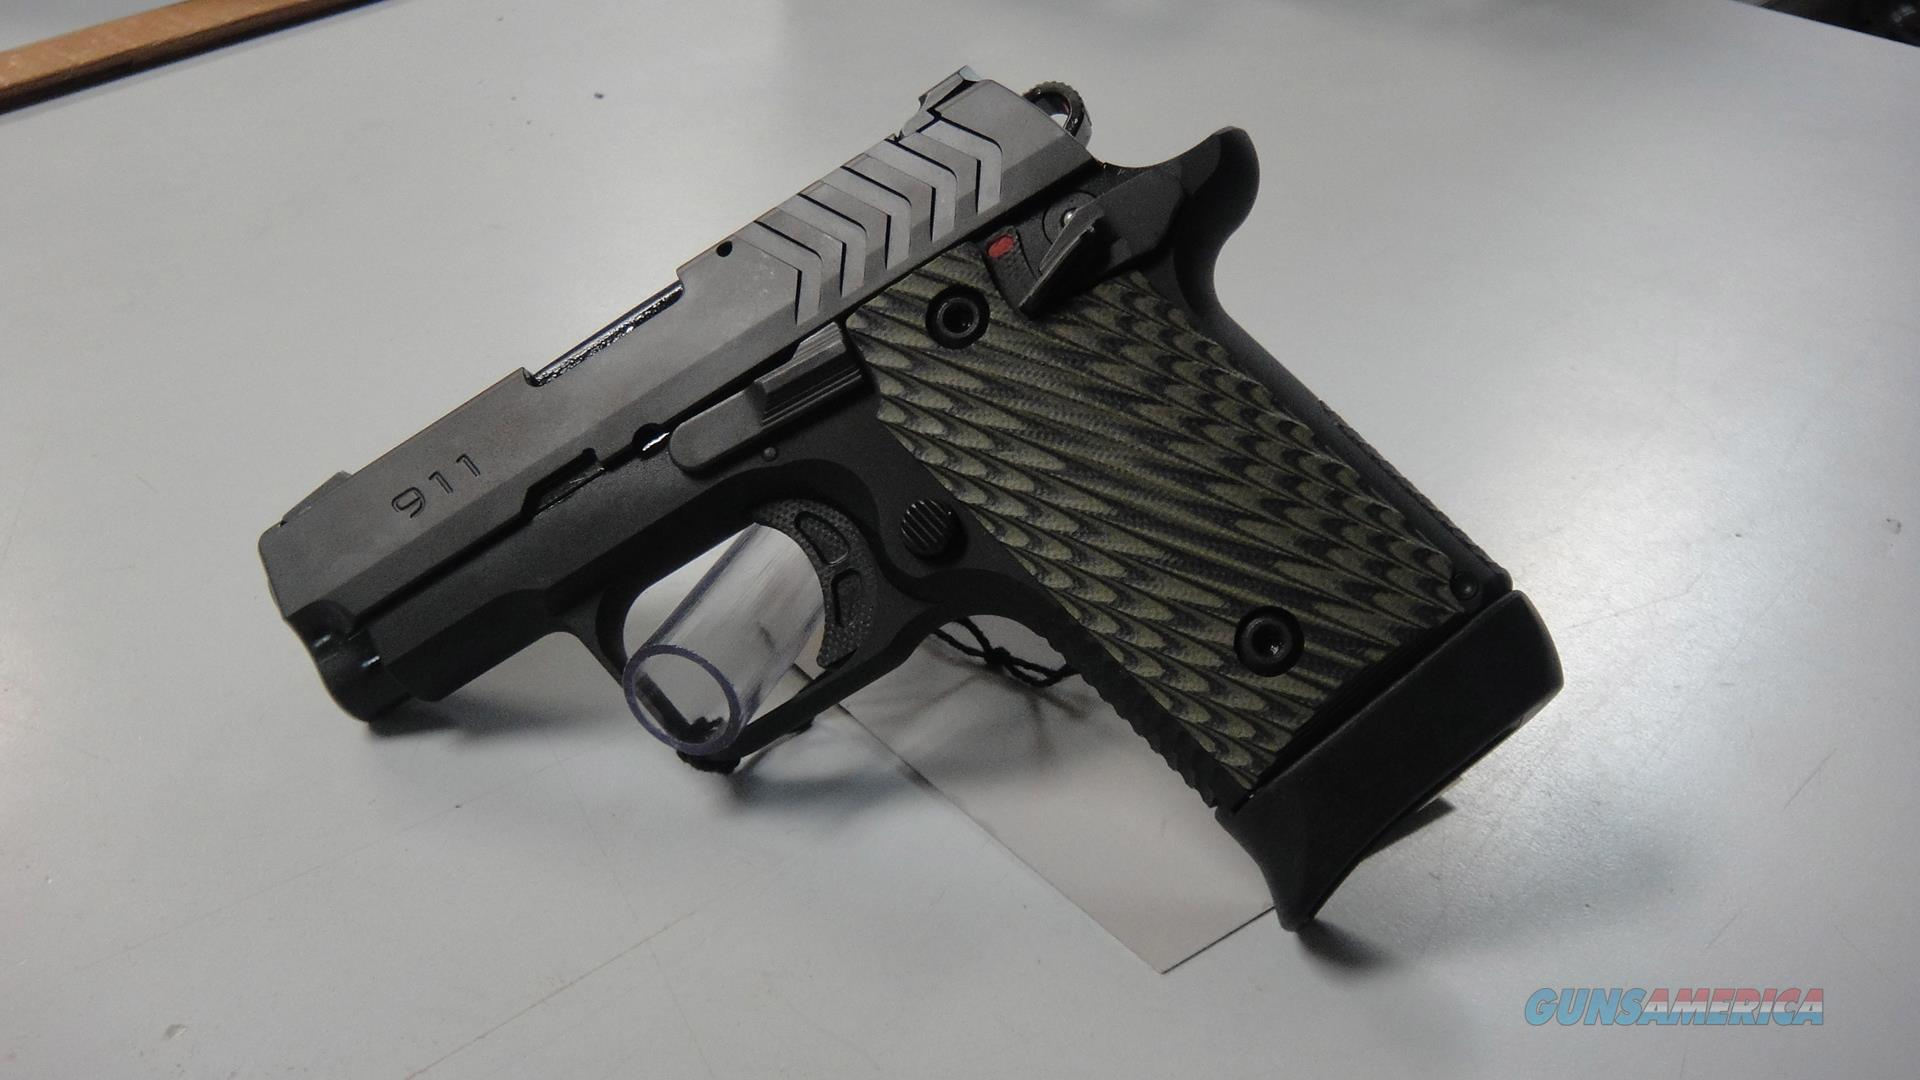 Springfield Armory 911 (Loaded) W/ night sights  Guns > Pistols > Springfield Armory Pistols > 911